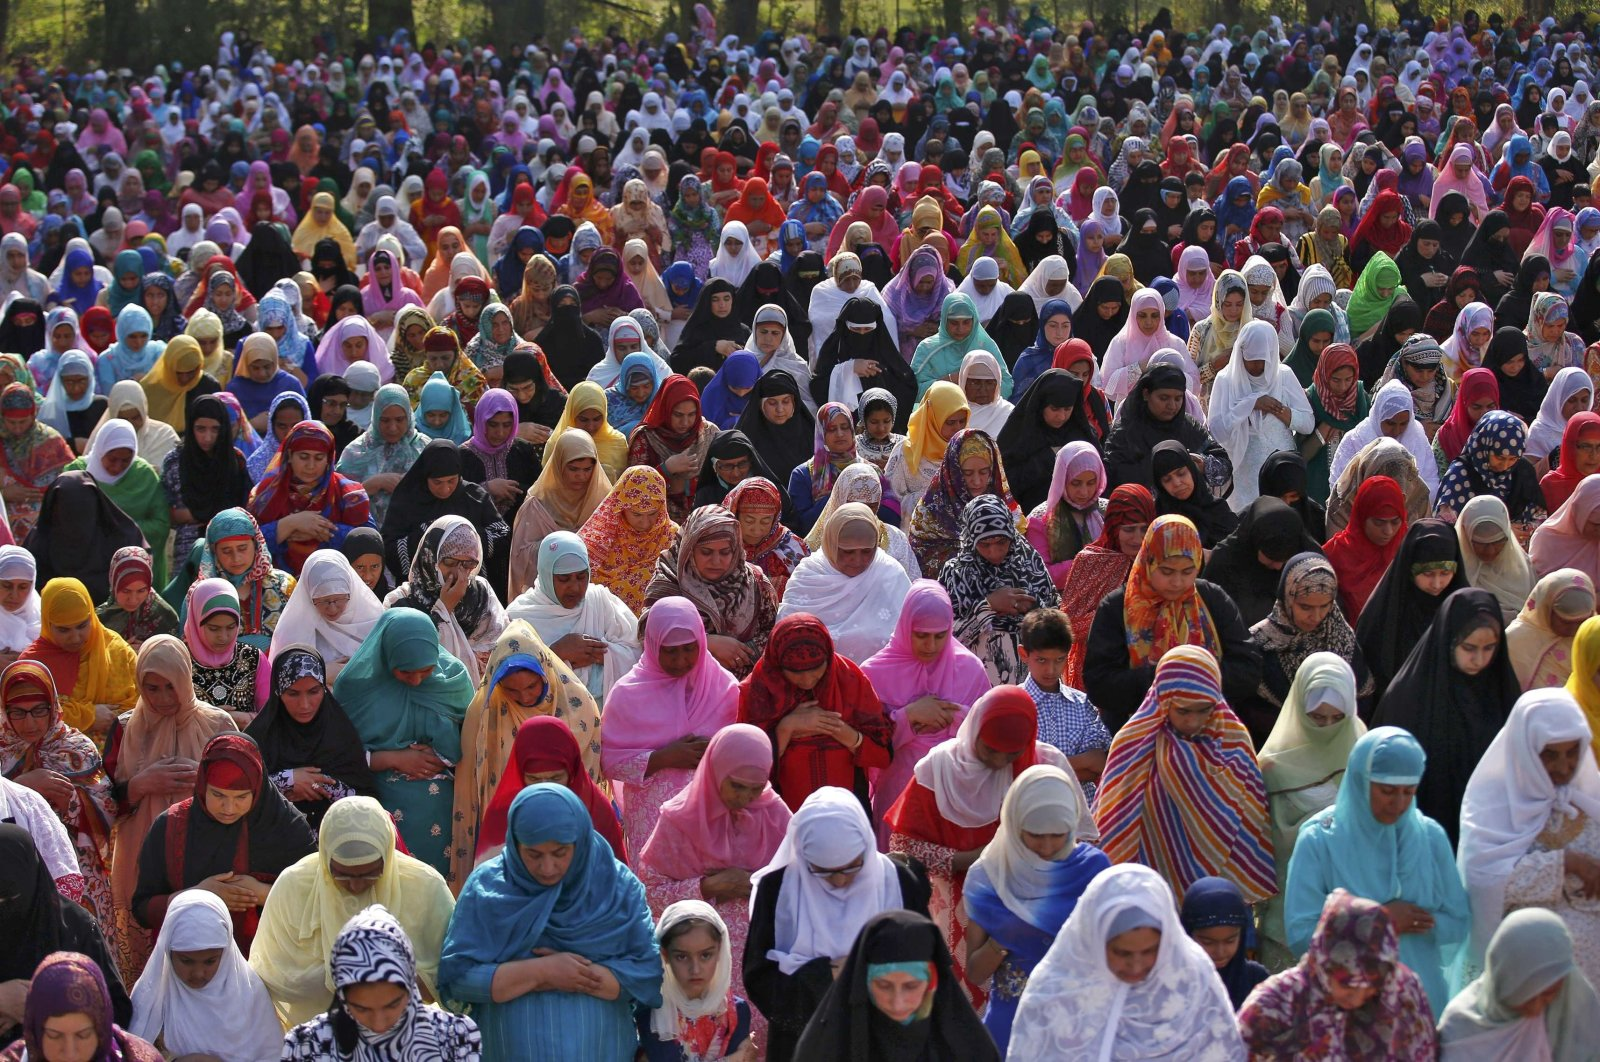 Muslim women attend Eid al-Fitr prayers to mark the end of the holy fasting month of Ramadan, Srinagar, India, July 6, 2016. (REUTERS)